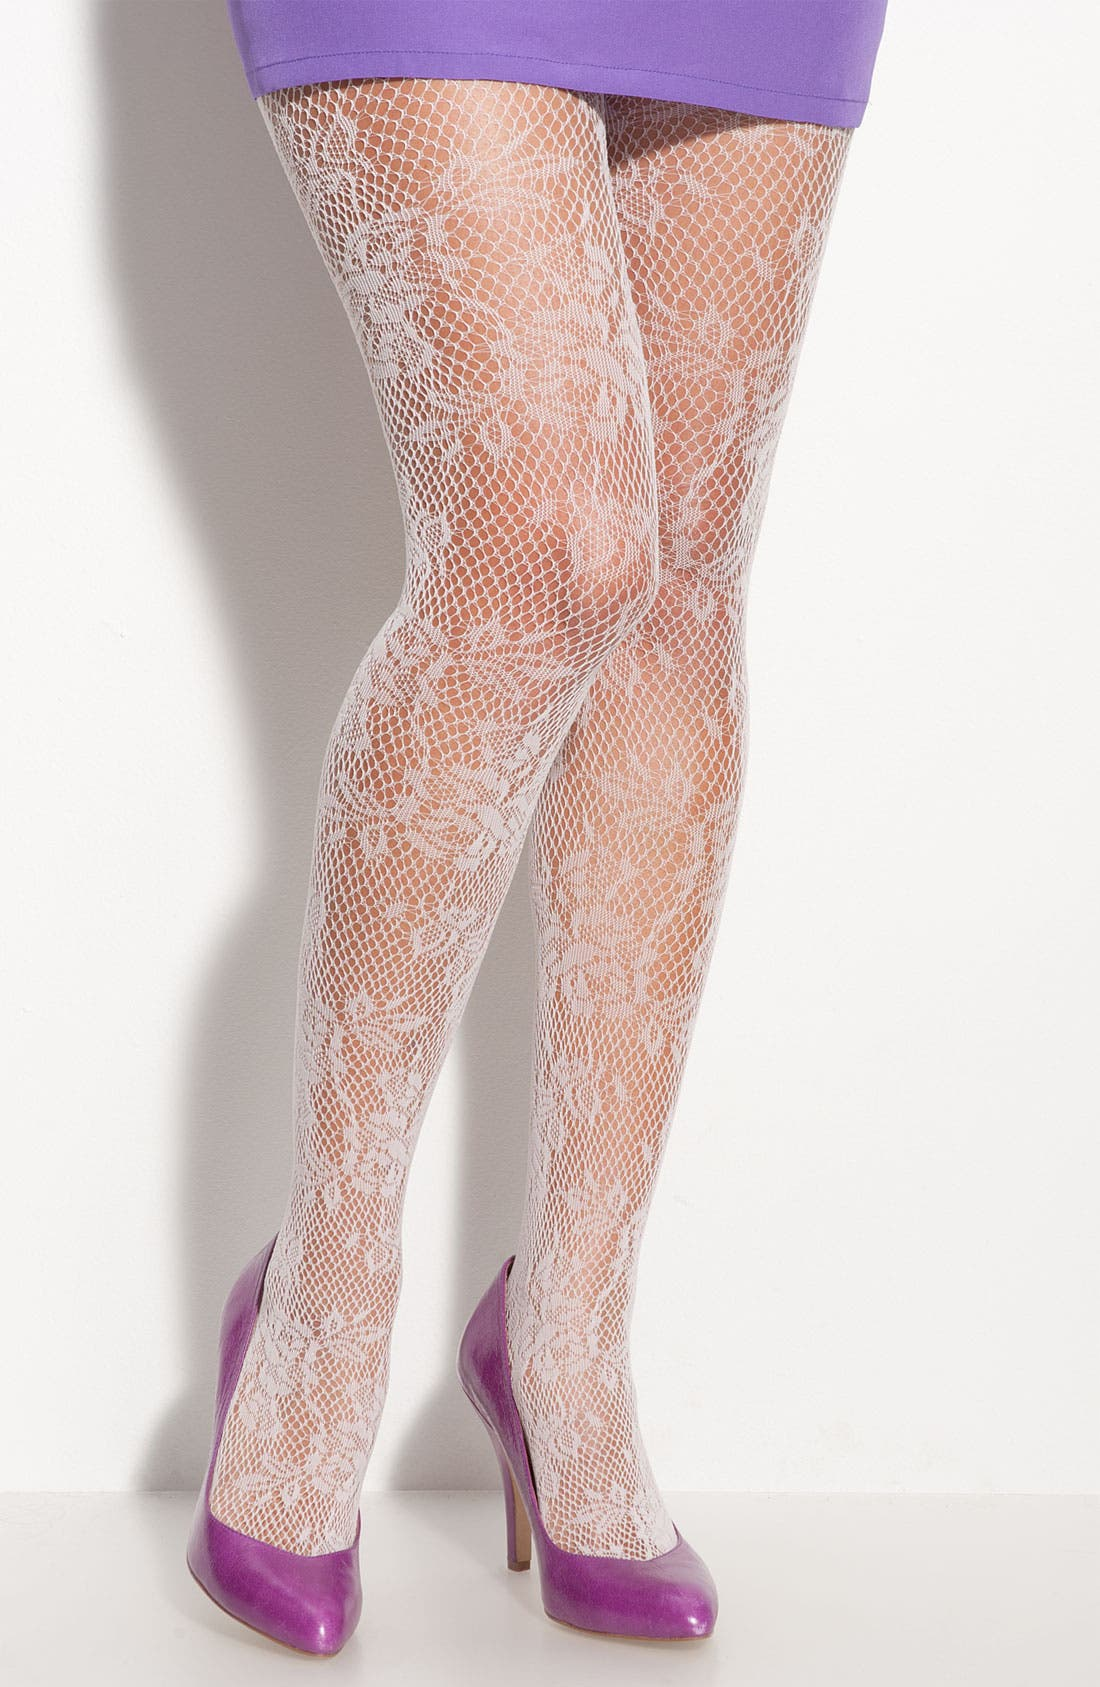 Alternate Image 1 Selected - Hue 'Rose Floral' Fishnet Stockings (2 for $22)